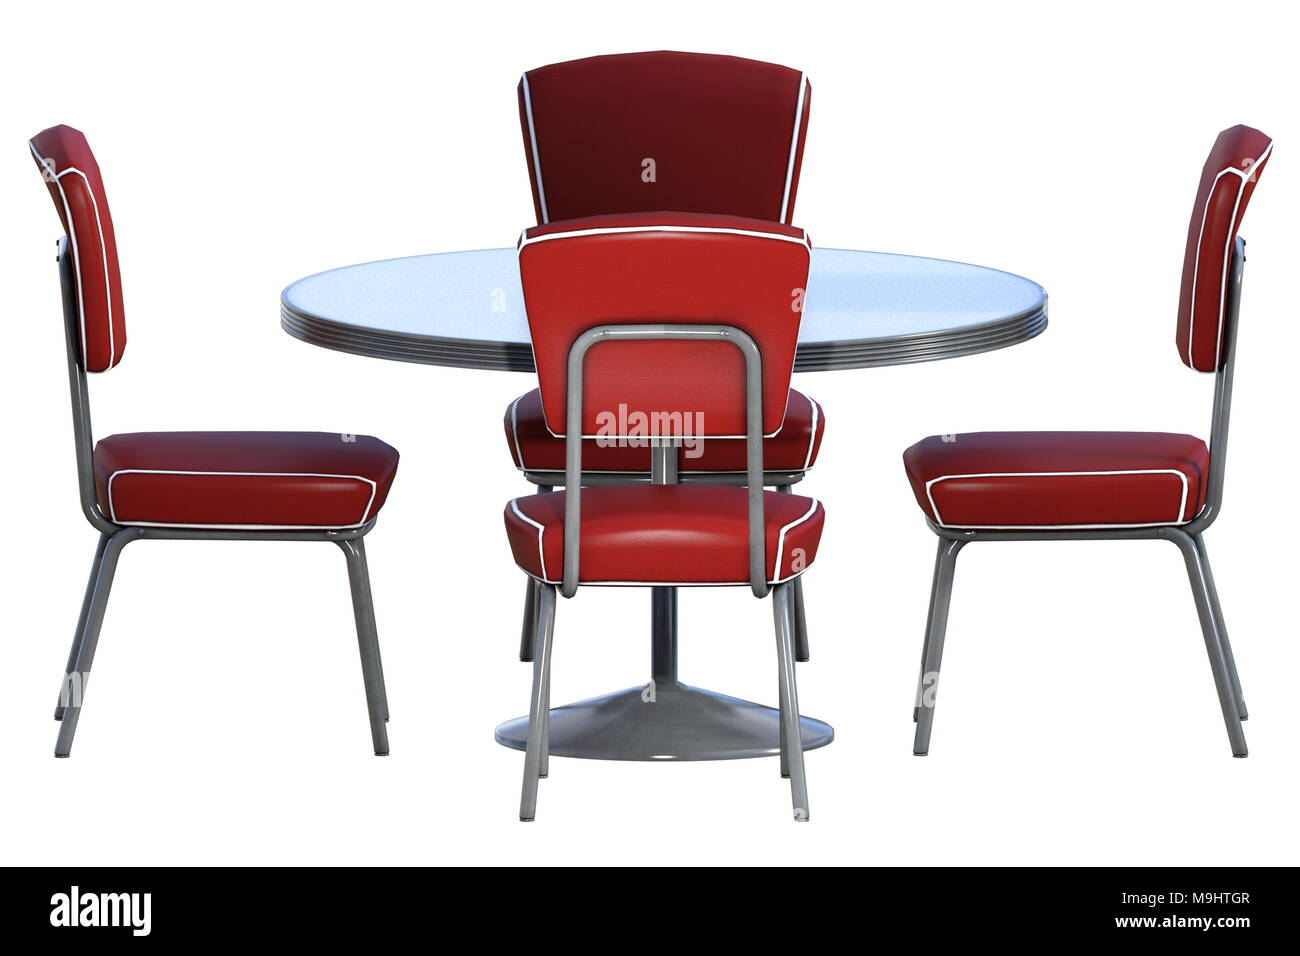 1950s Furniture High Resolution Stock Photography And Images Alamy